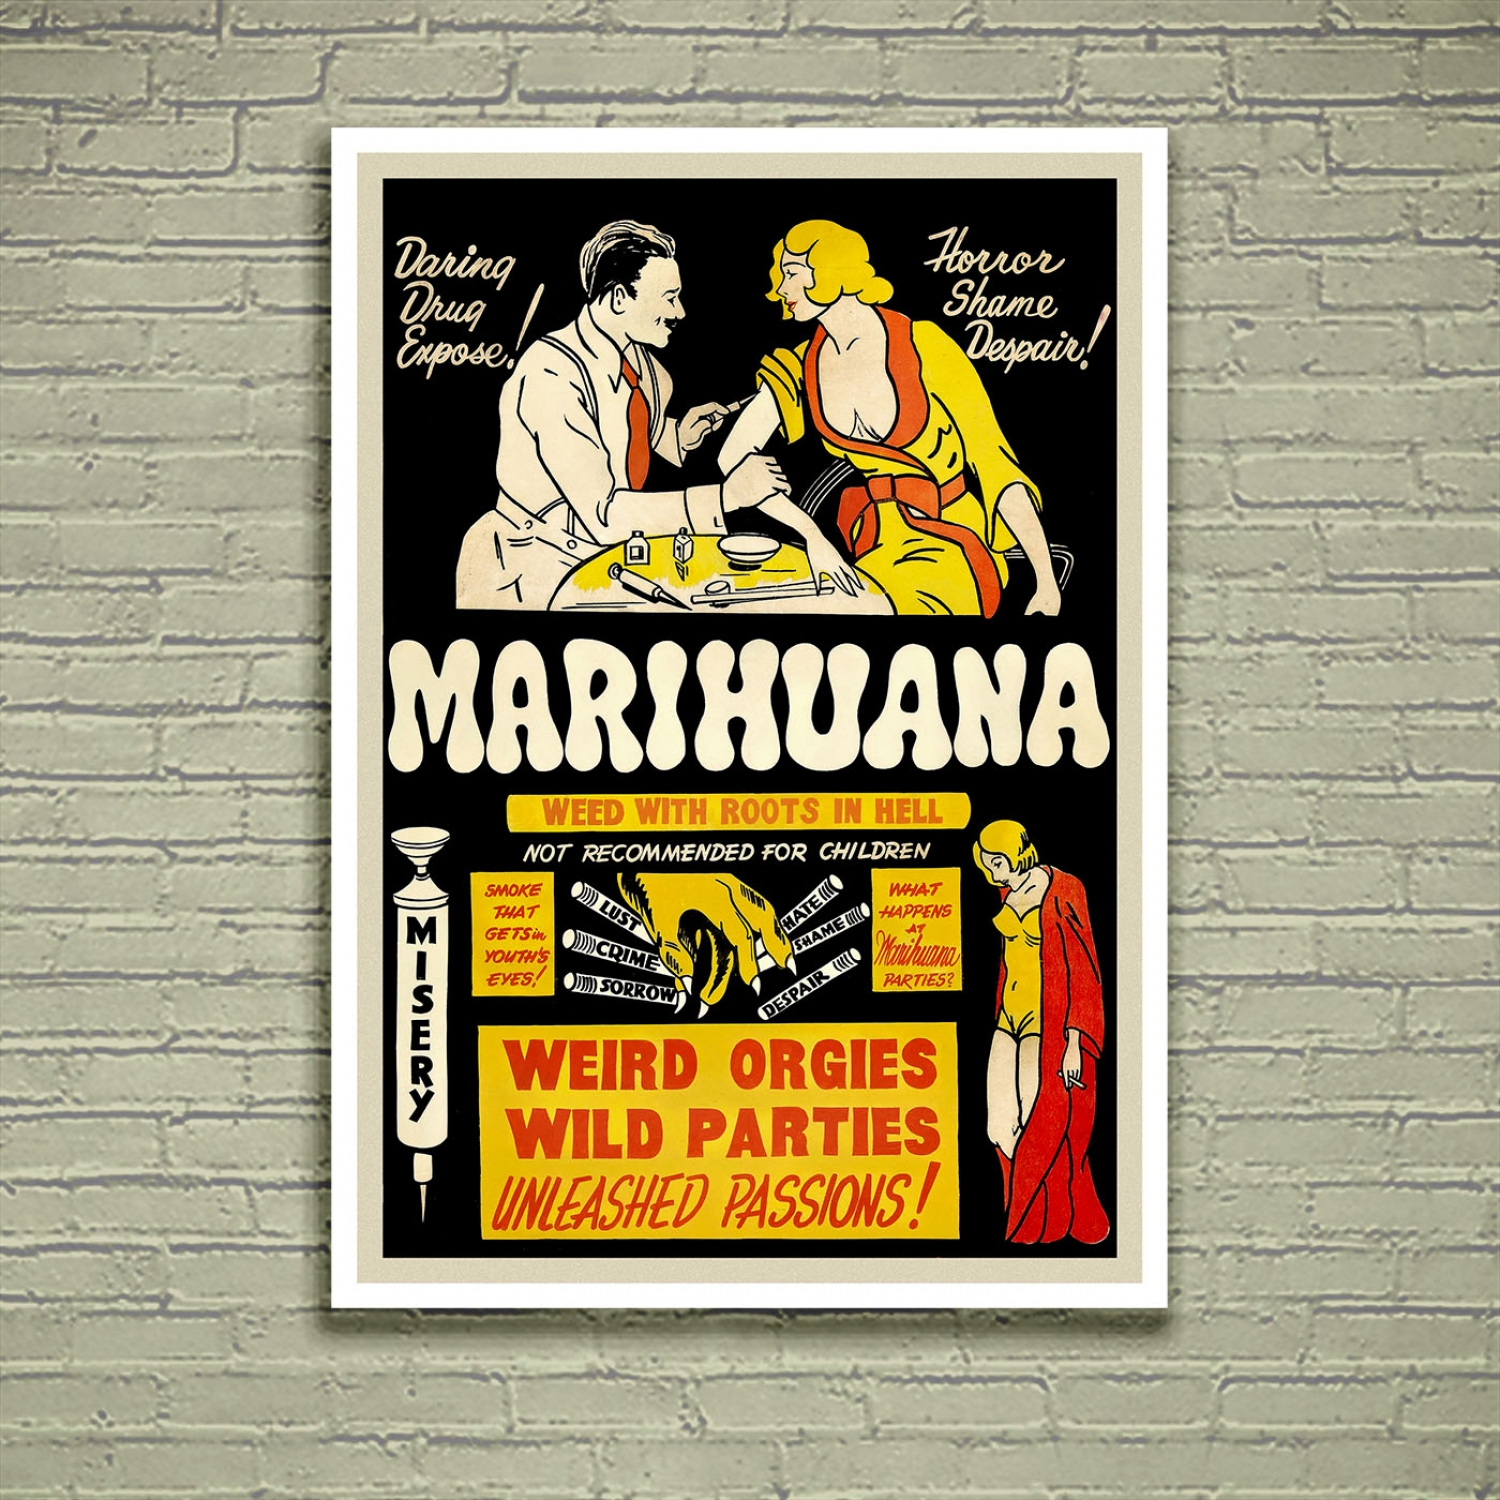 Marihuana - Weed with Roots in Hell | Vintage Propaganda ...